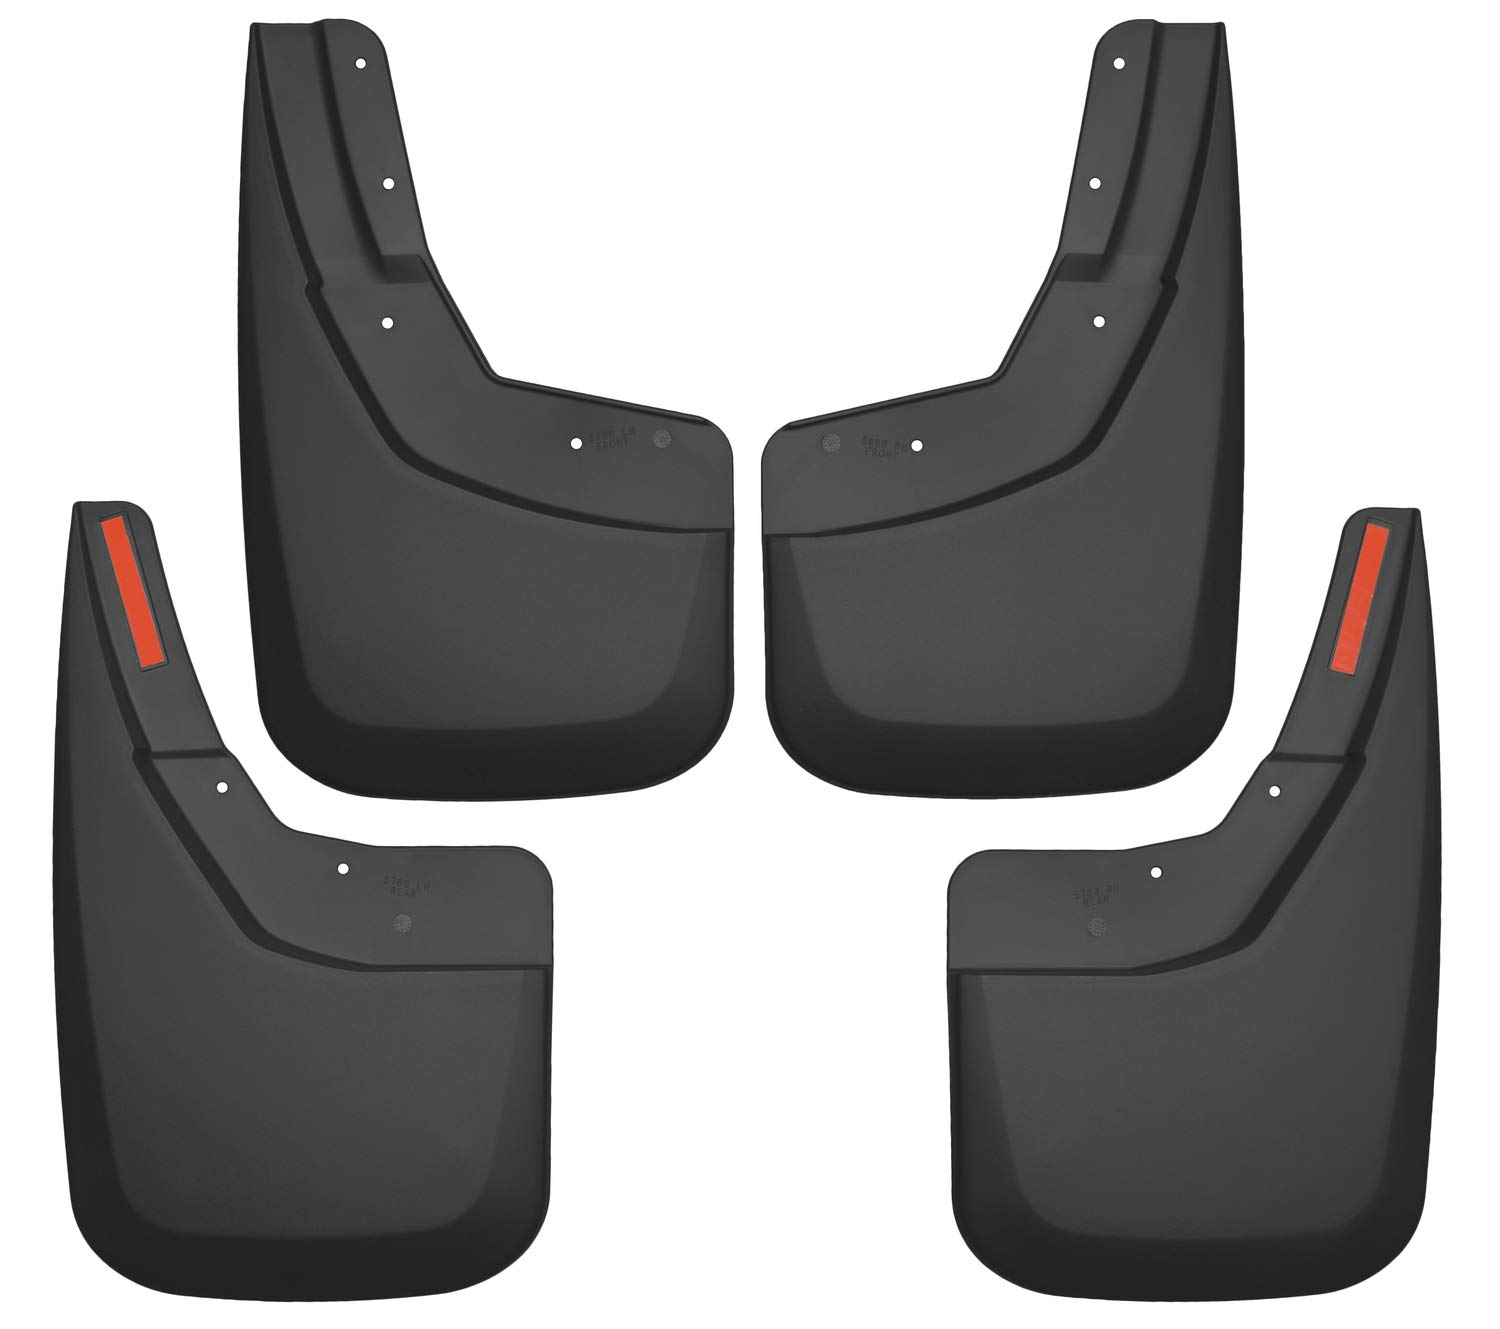 Husky Liners 56886 Black Front and Rear Custom Mud Guards Fits 14-18 1500, 15-19 2500/3500, 2019 Silverado Legacy 1500-Single Wheels, 4 Pack